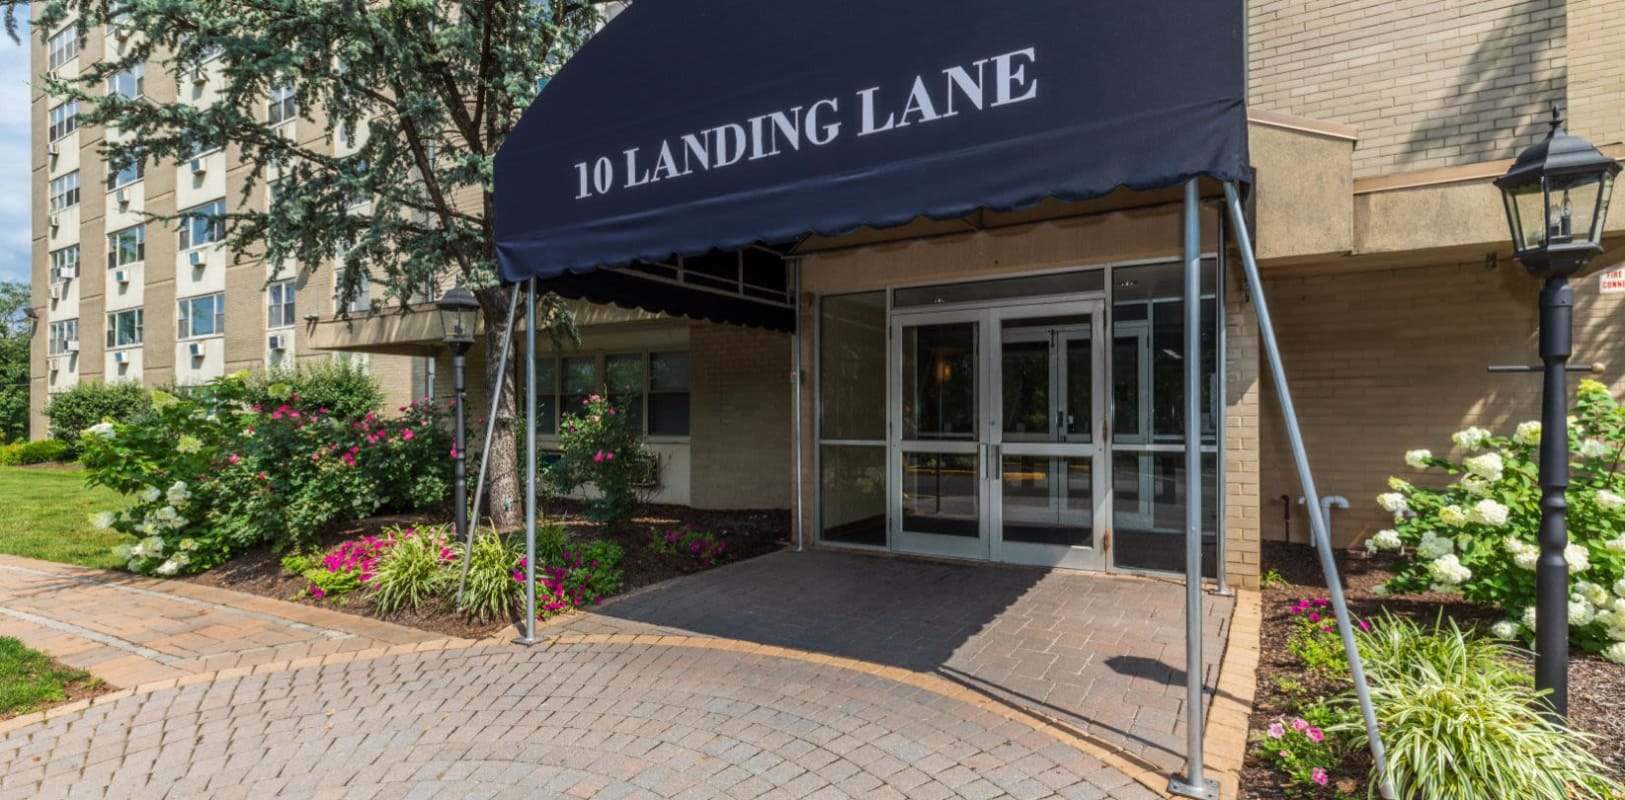 Covered entrance to 10 Landing Lane in New Brunswick, New Jersey